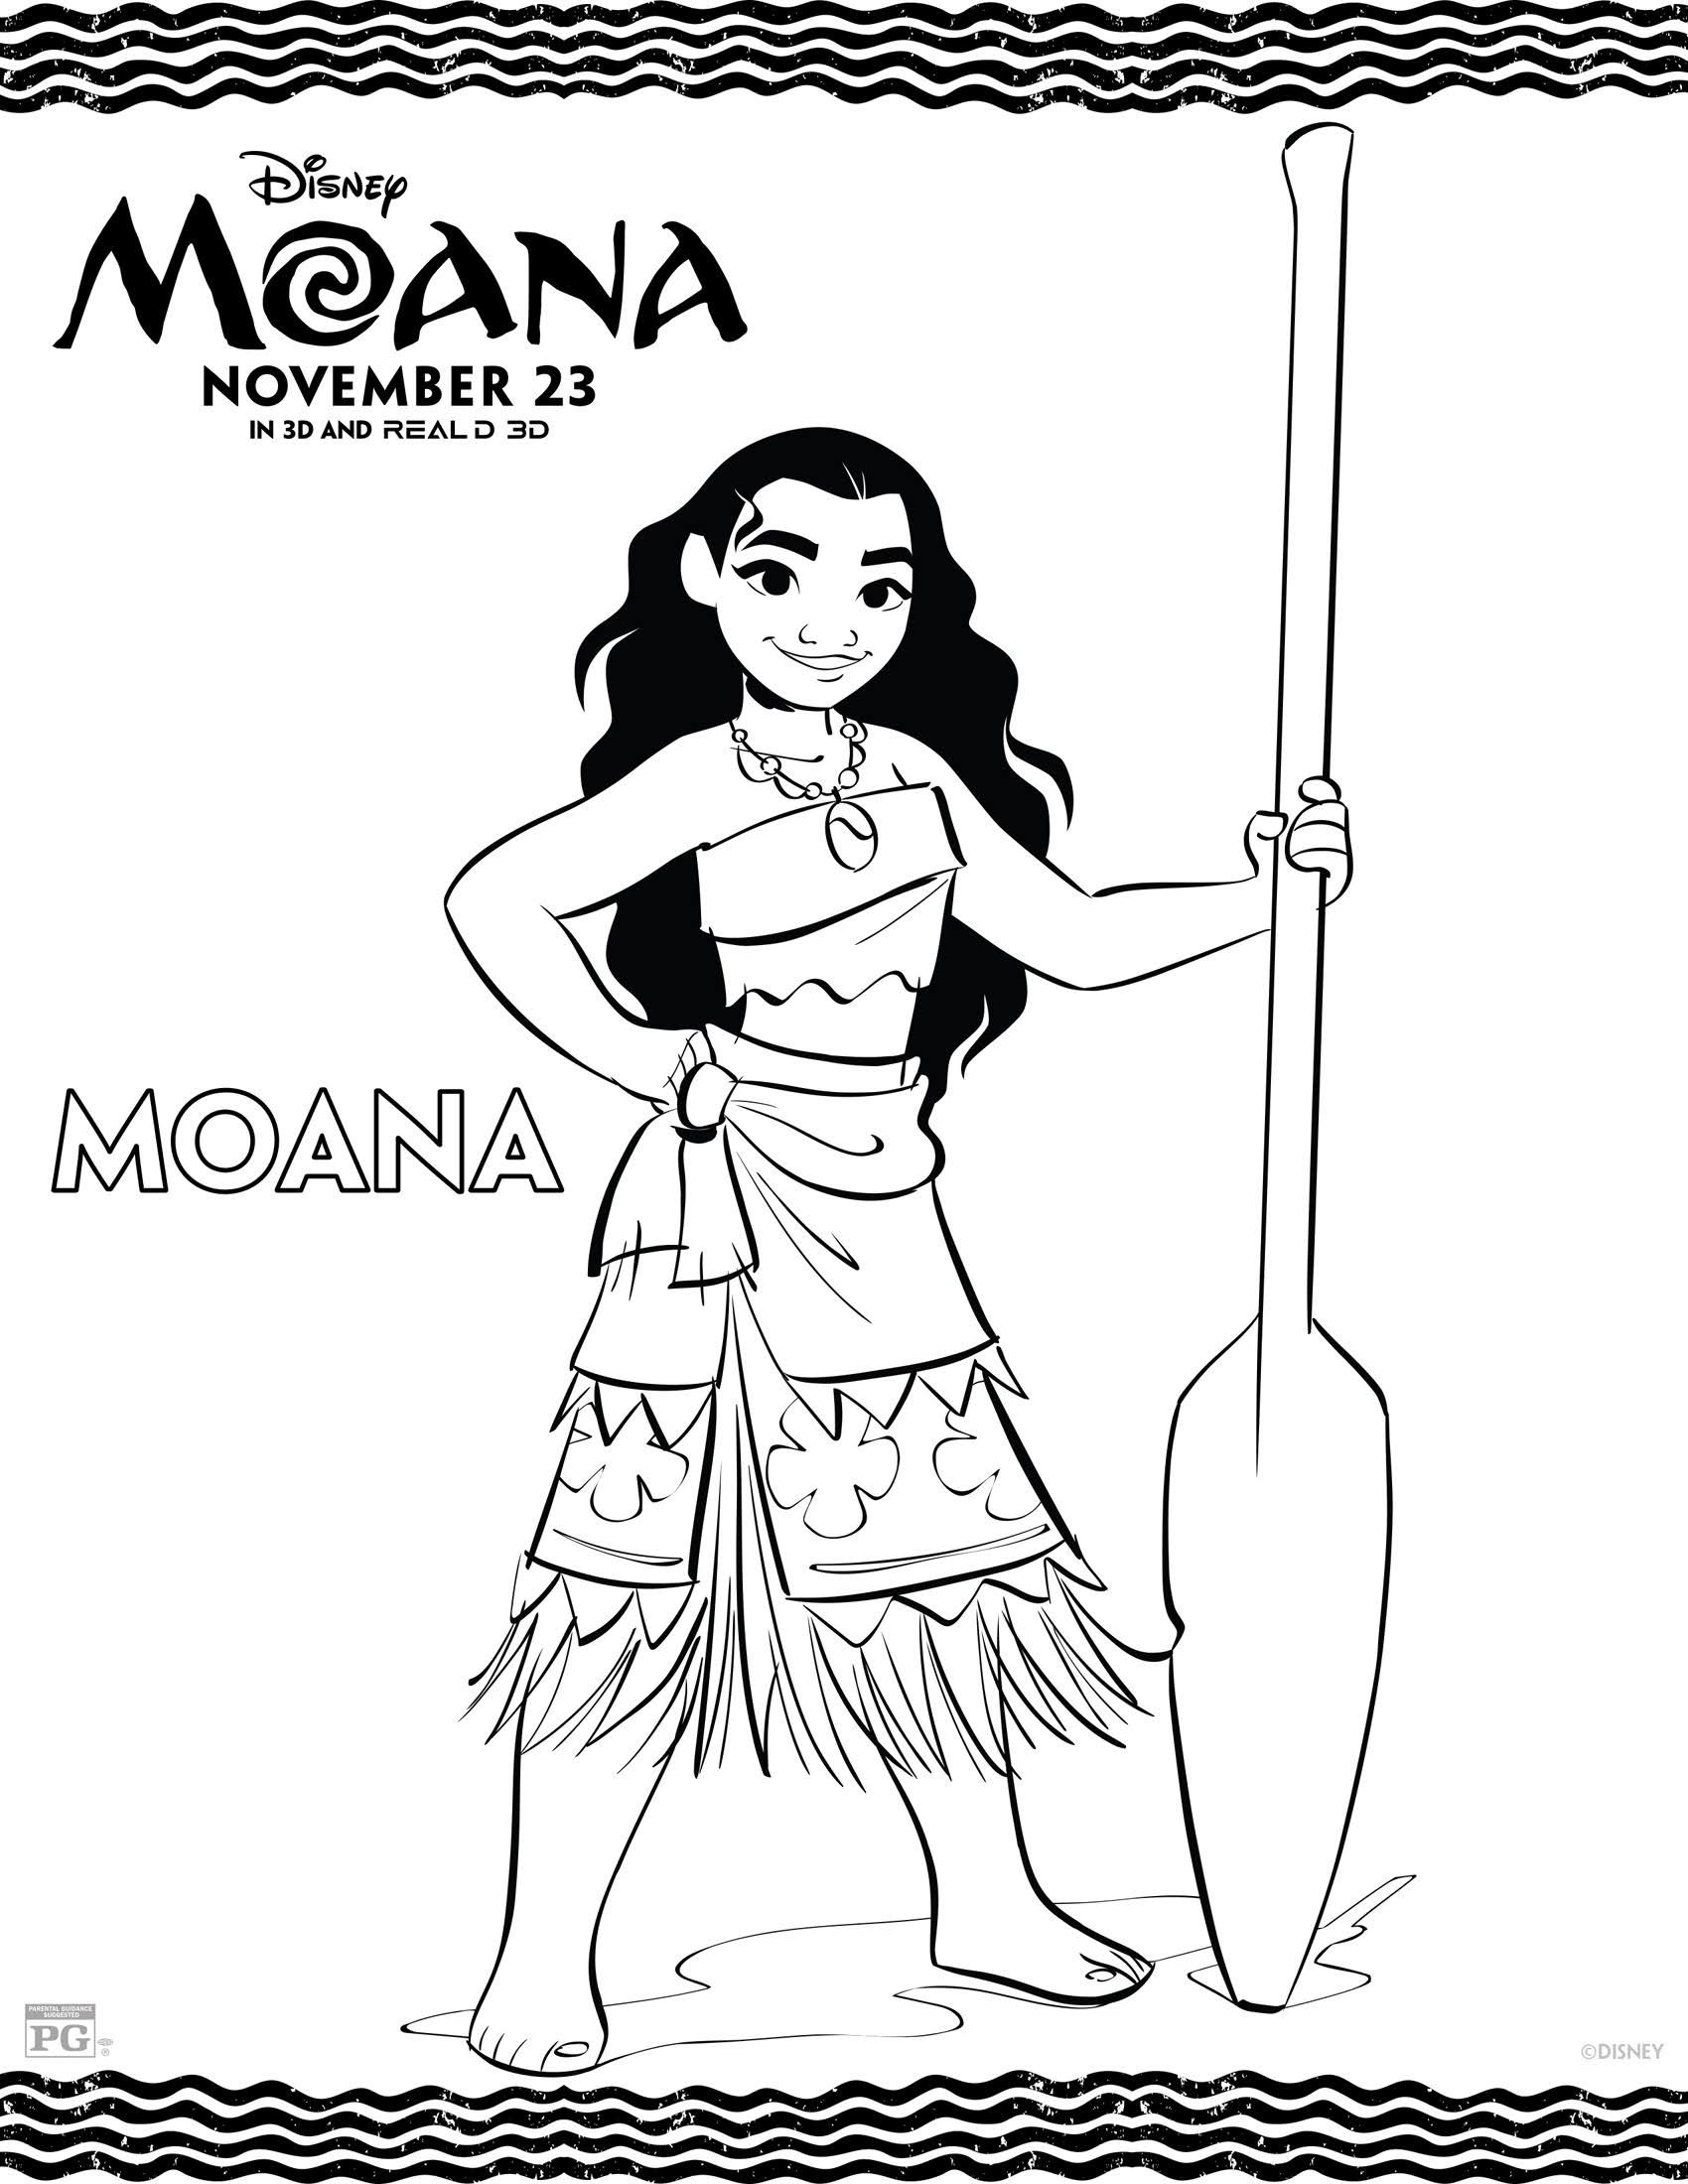 X ray coloring sheets - Disney S Moana Movie Review And Free Printable Coloring Pages